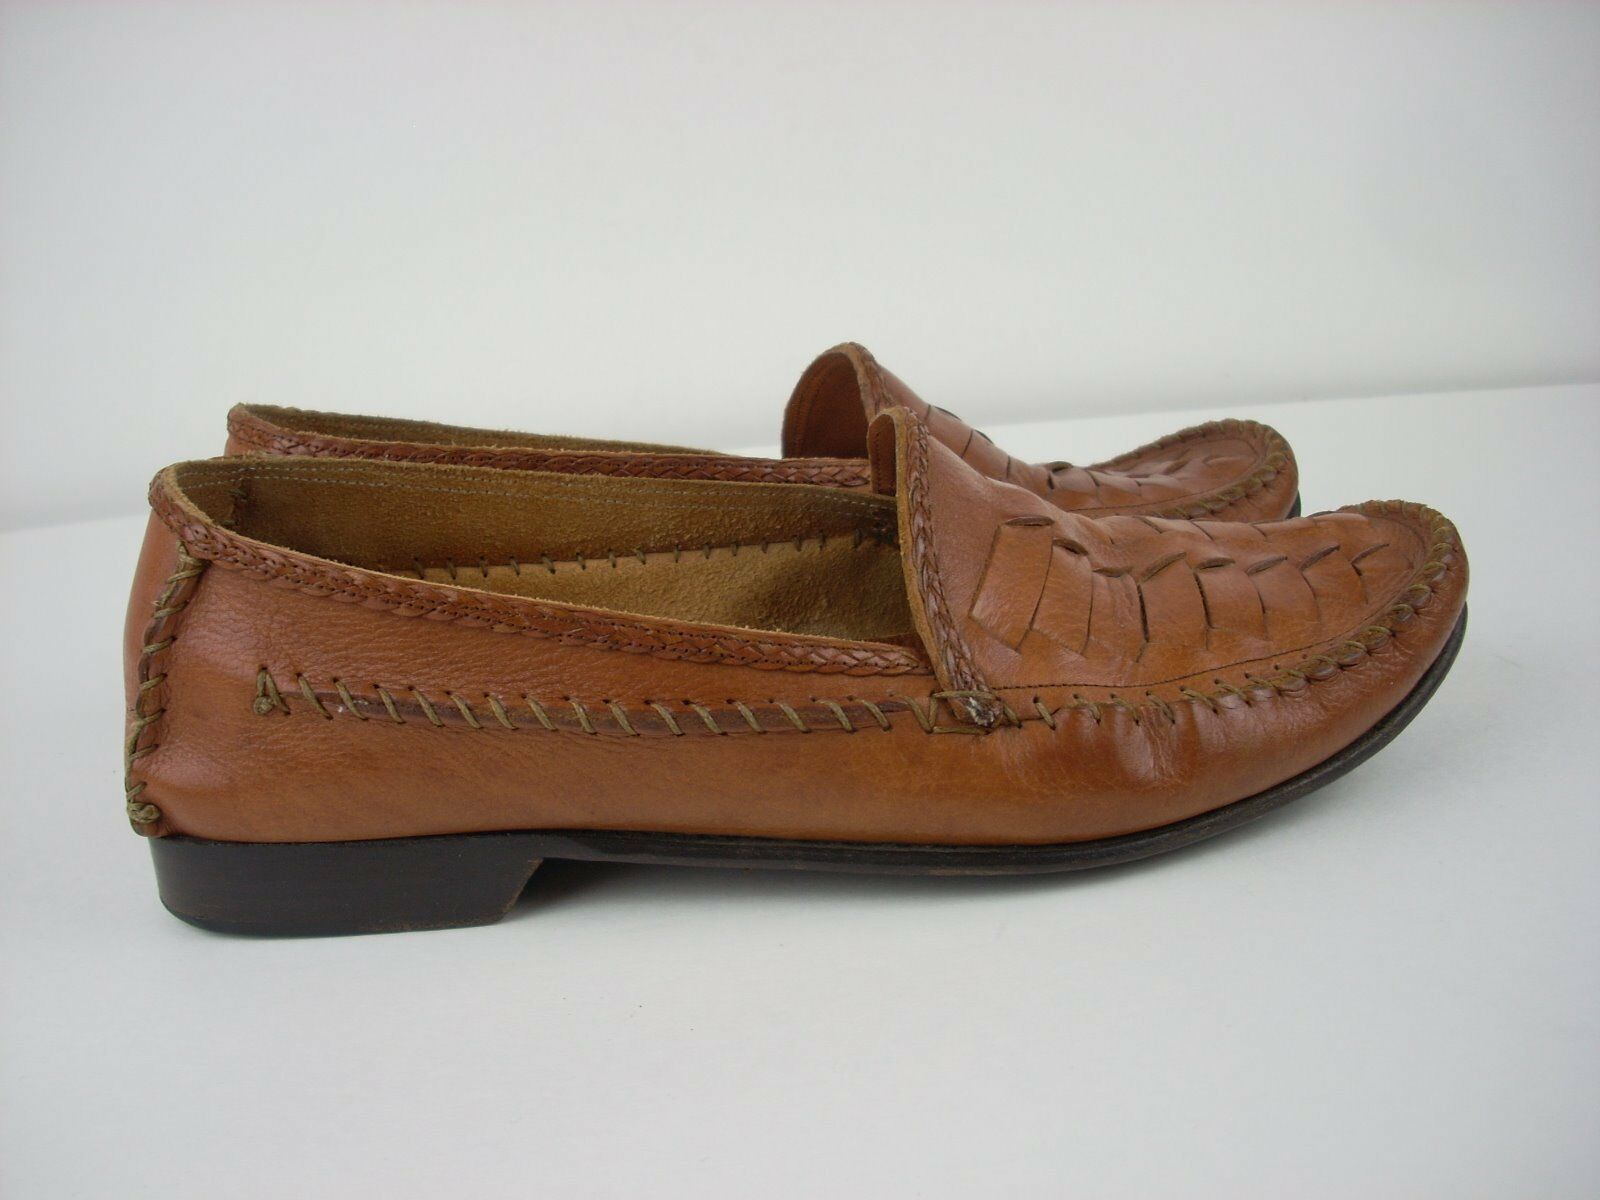 COLE HAAN Tan 8 1/2 Medium Loafers Tan HAAN Braun Leder Sole Bragano  Men Slip On 7637cc